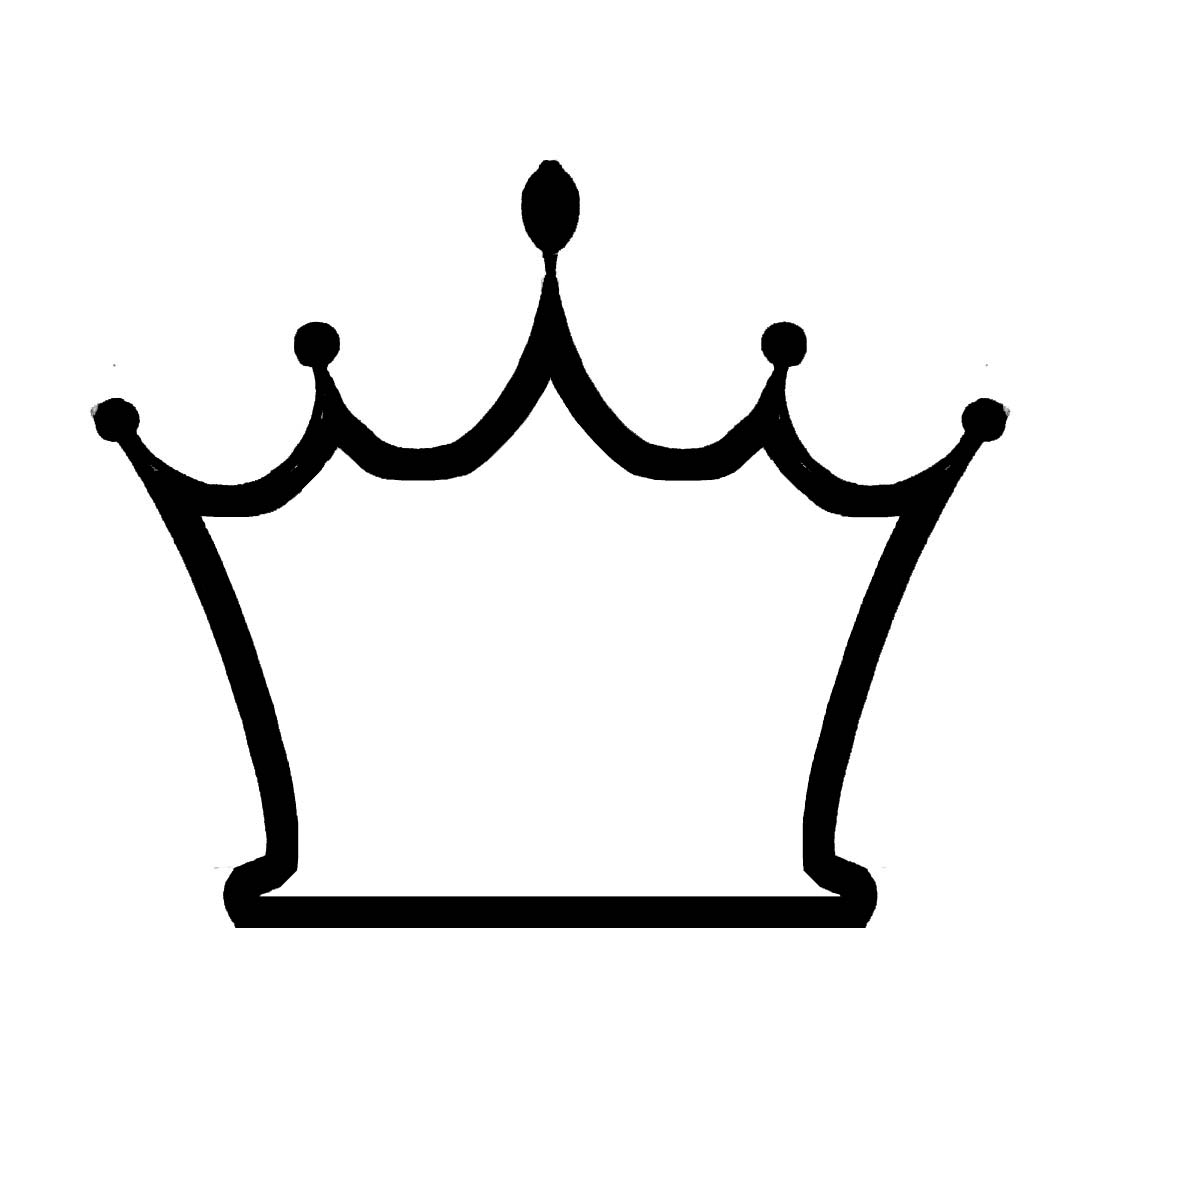 Do You Know How to Say Crown in Different Languages